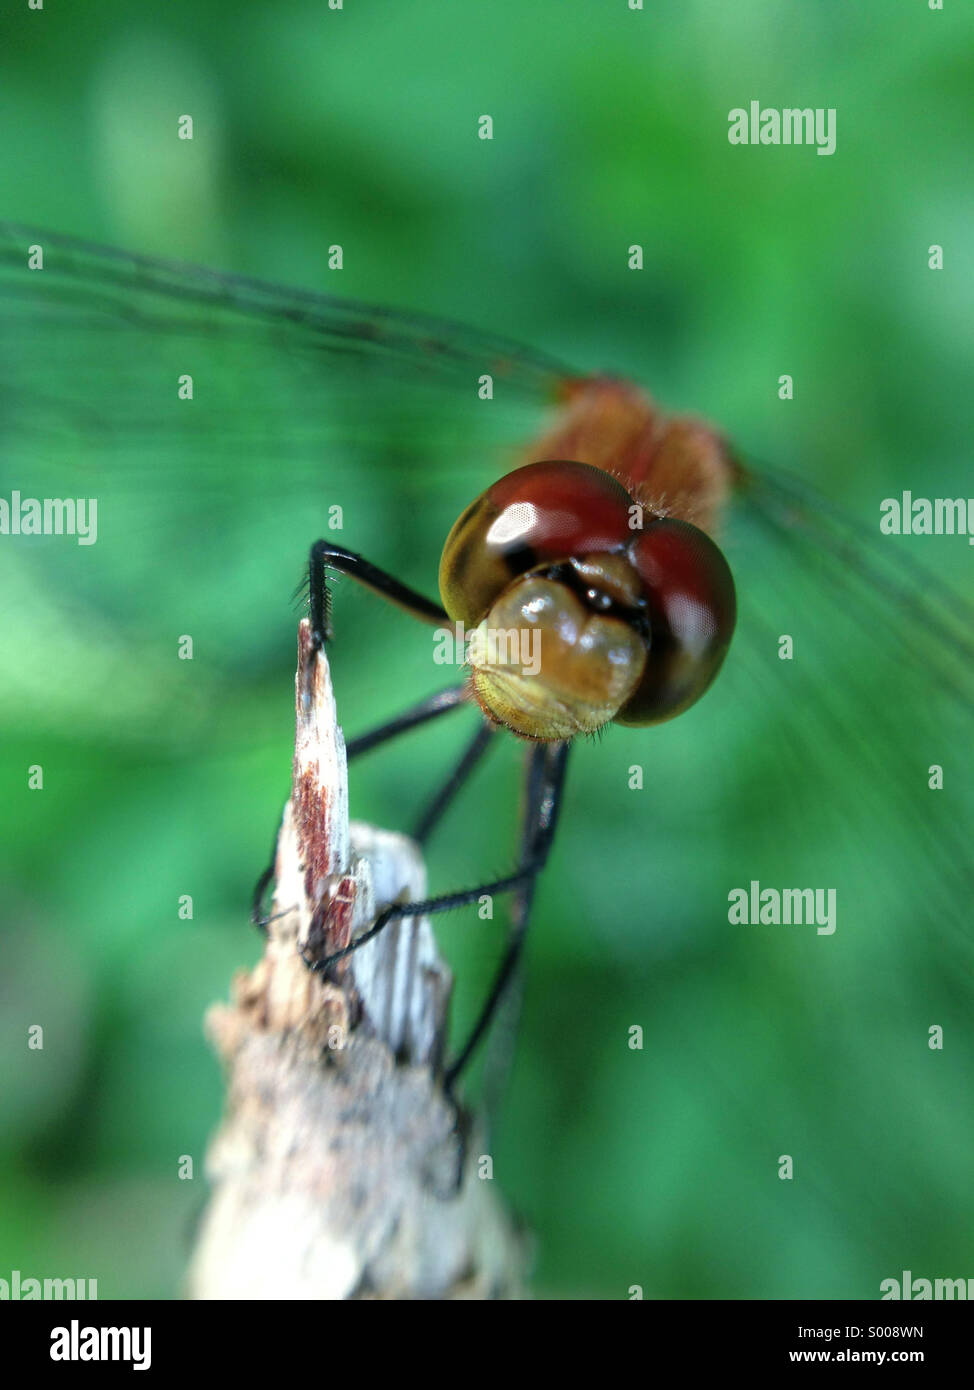 Dragonfly sitting on a branch. - Stock Image